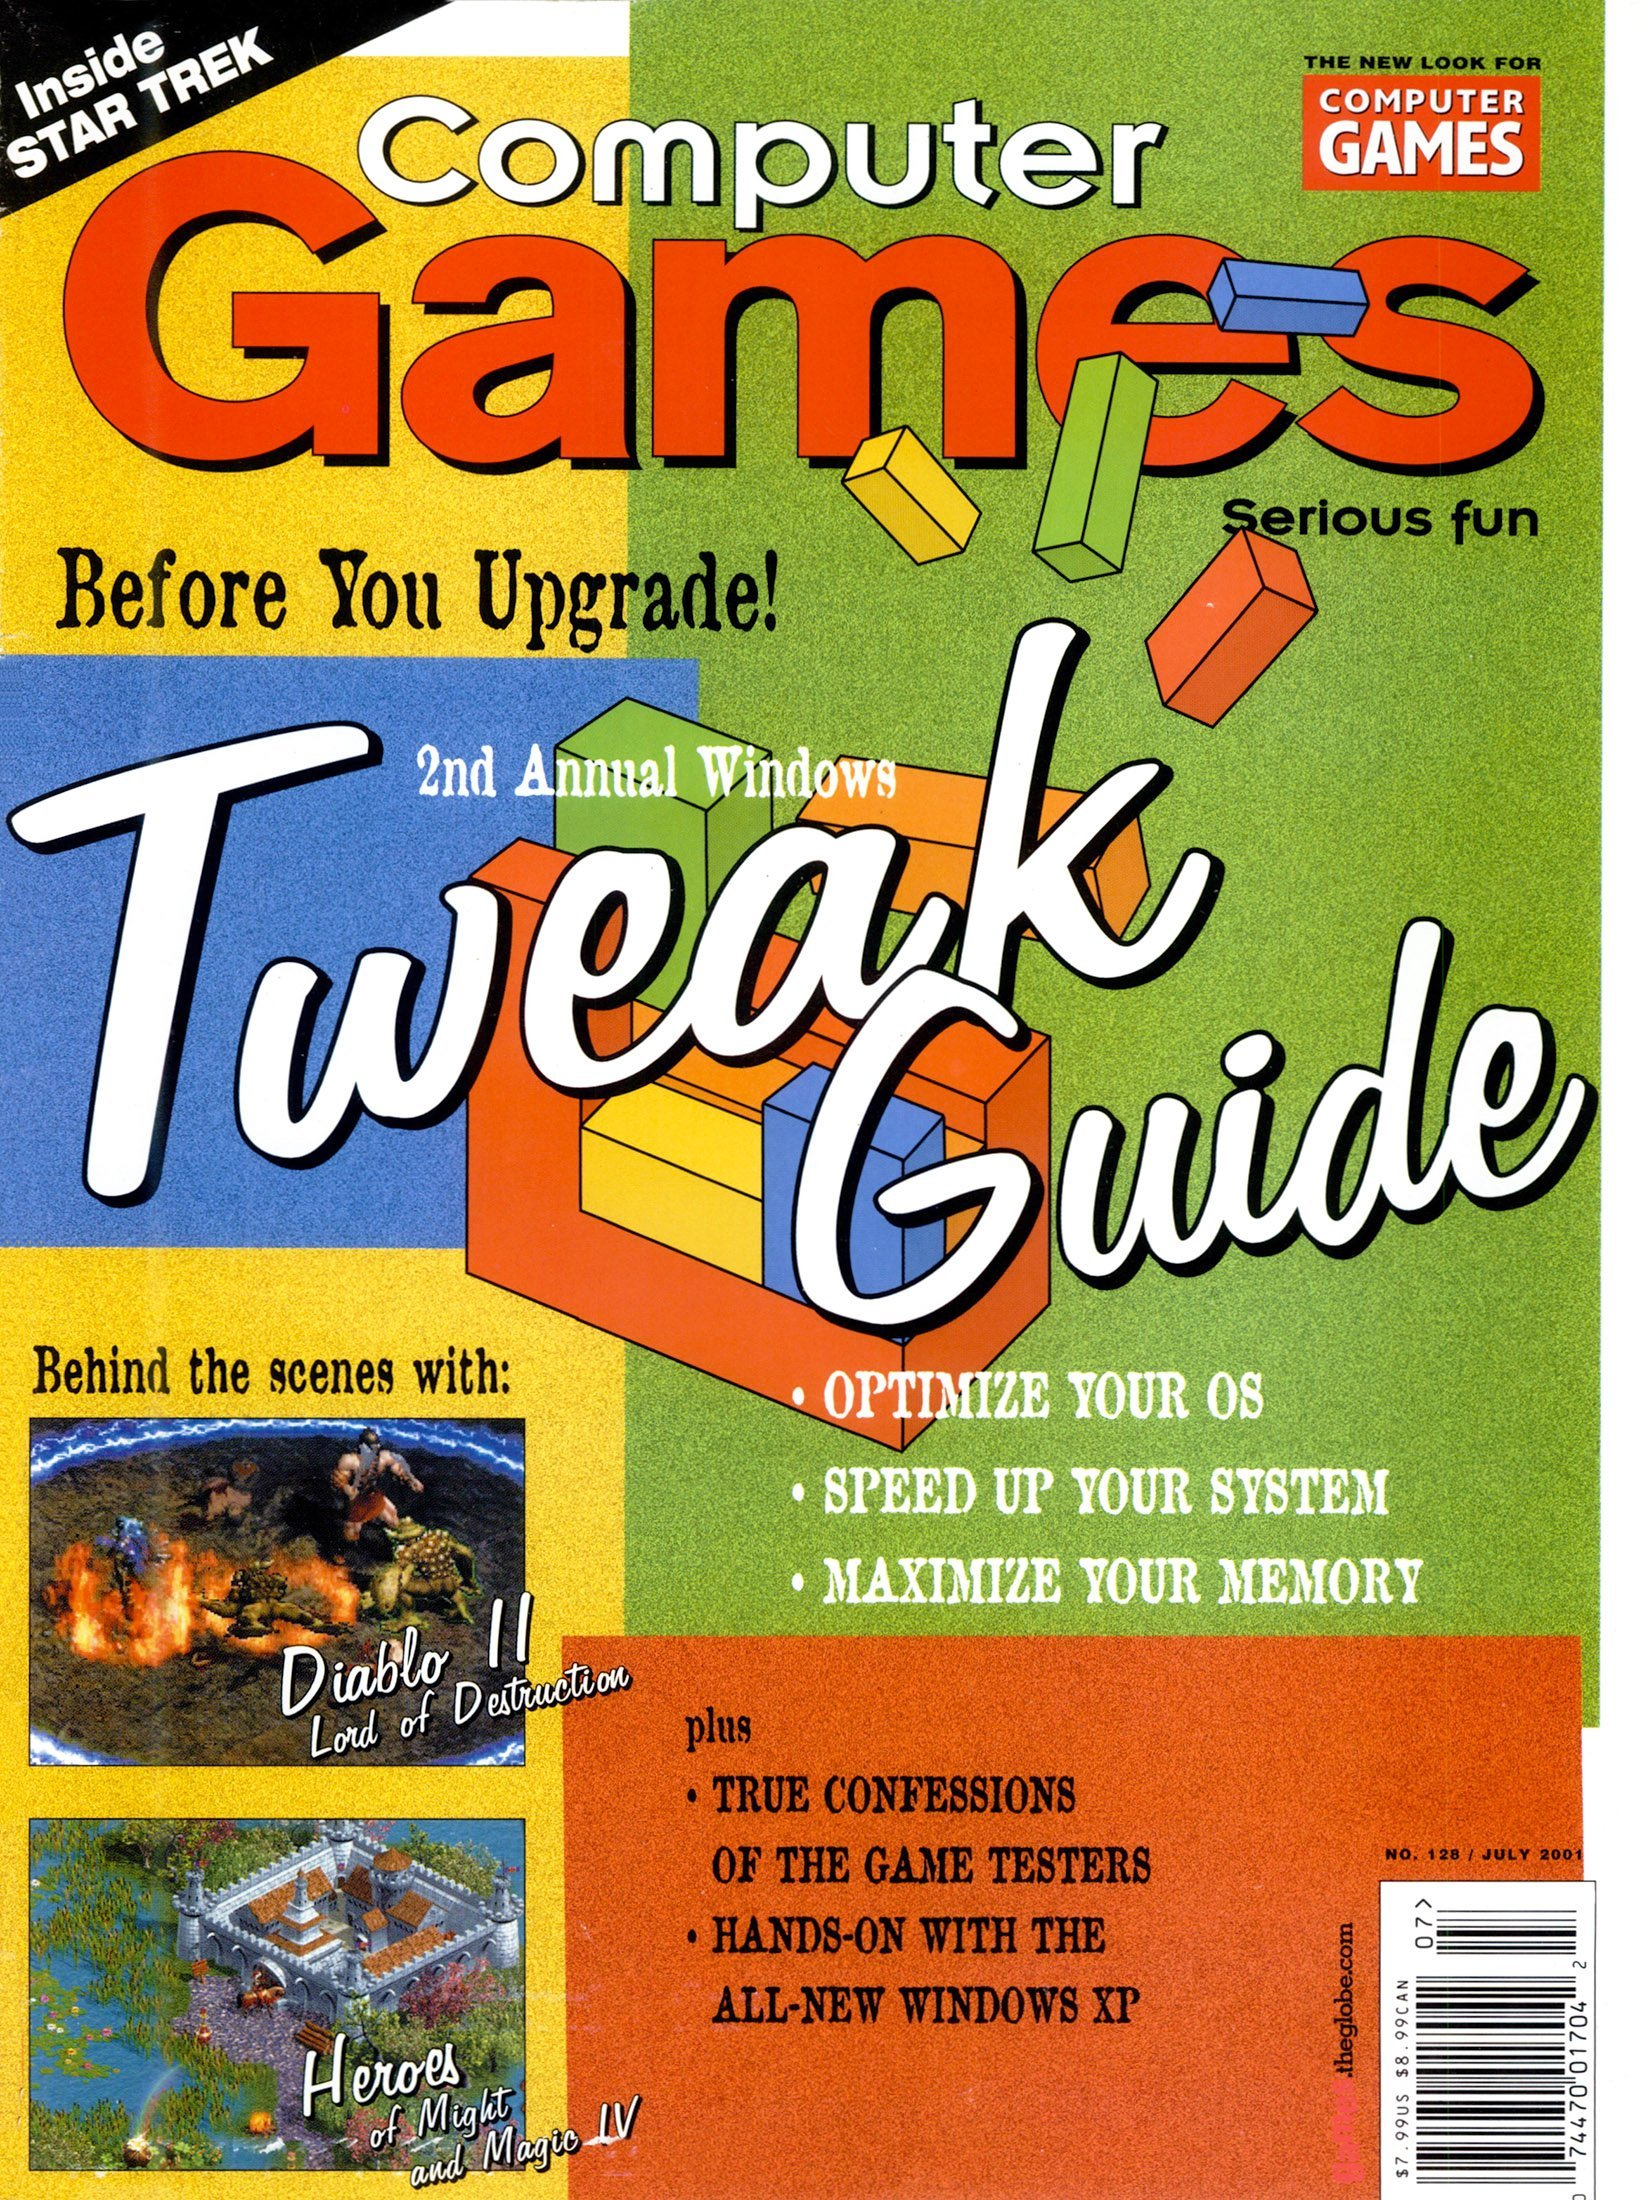 Computer Games Issue 128 (July 2001)